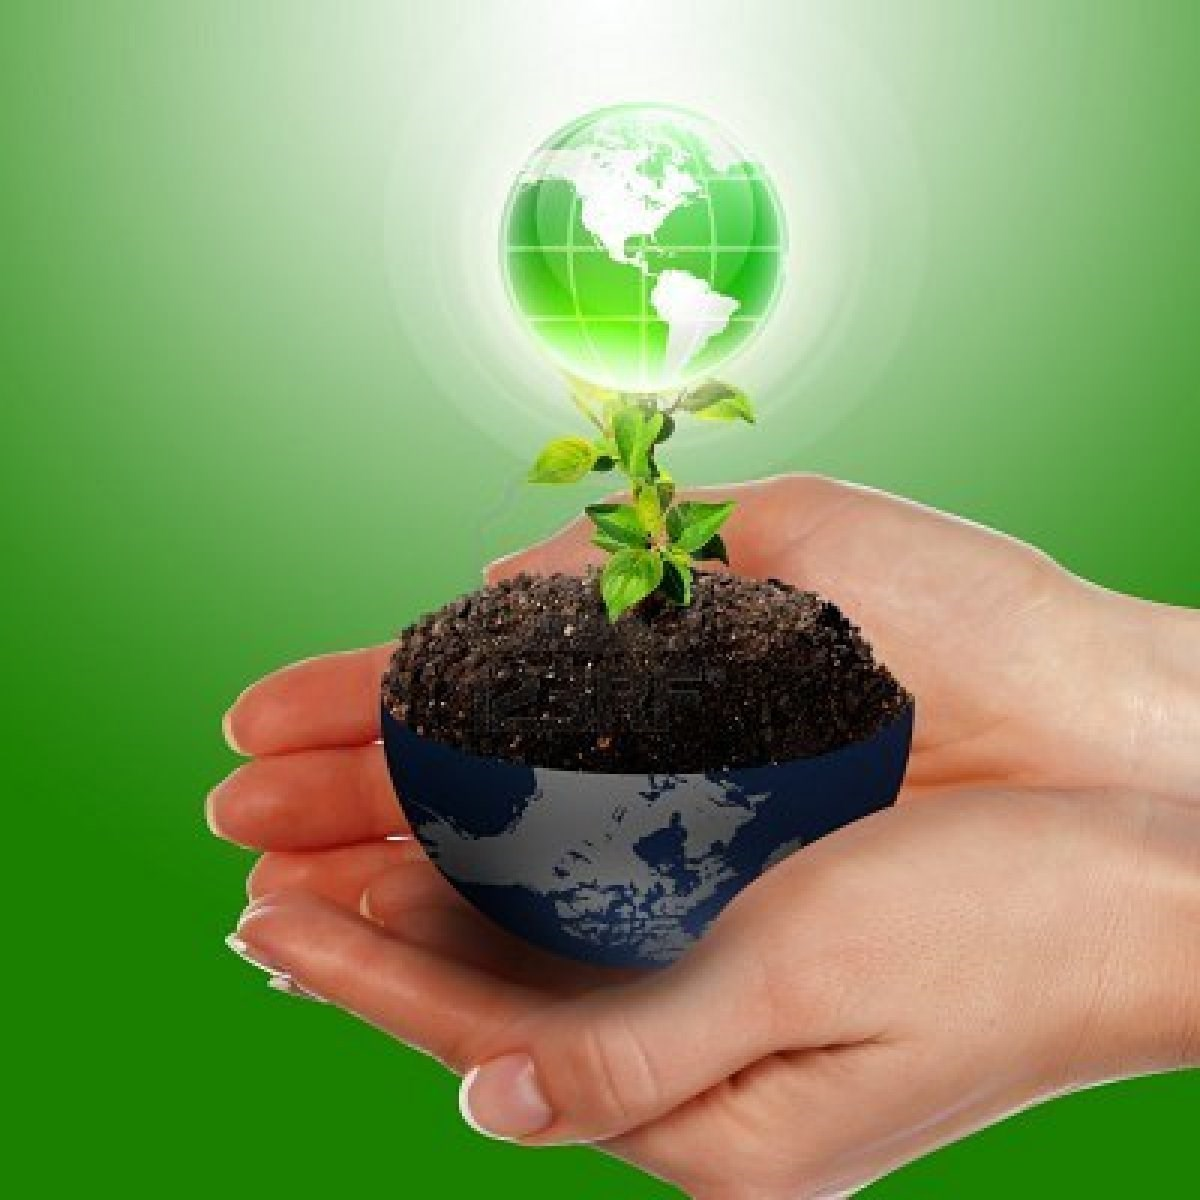 corporate responsibility to protect the environment It's a question often debated, but seldom answered authoritatively: do companies have a social responsibility to protect the environment beyond legal requirements specifically, may companies do so within the scope of their fiduciary responsibilities to their shareholders can they do so on a.